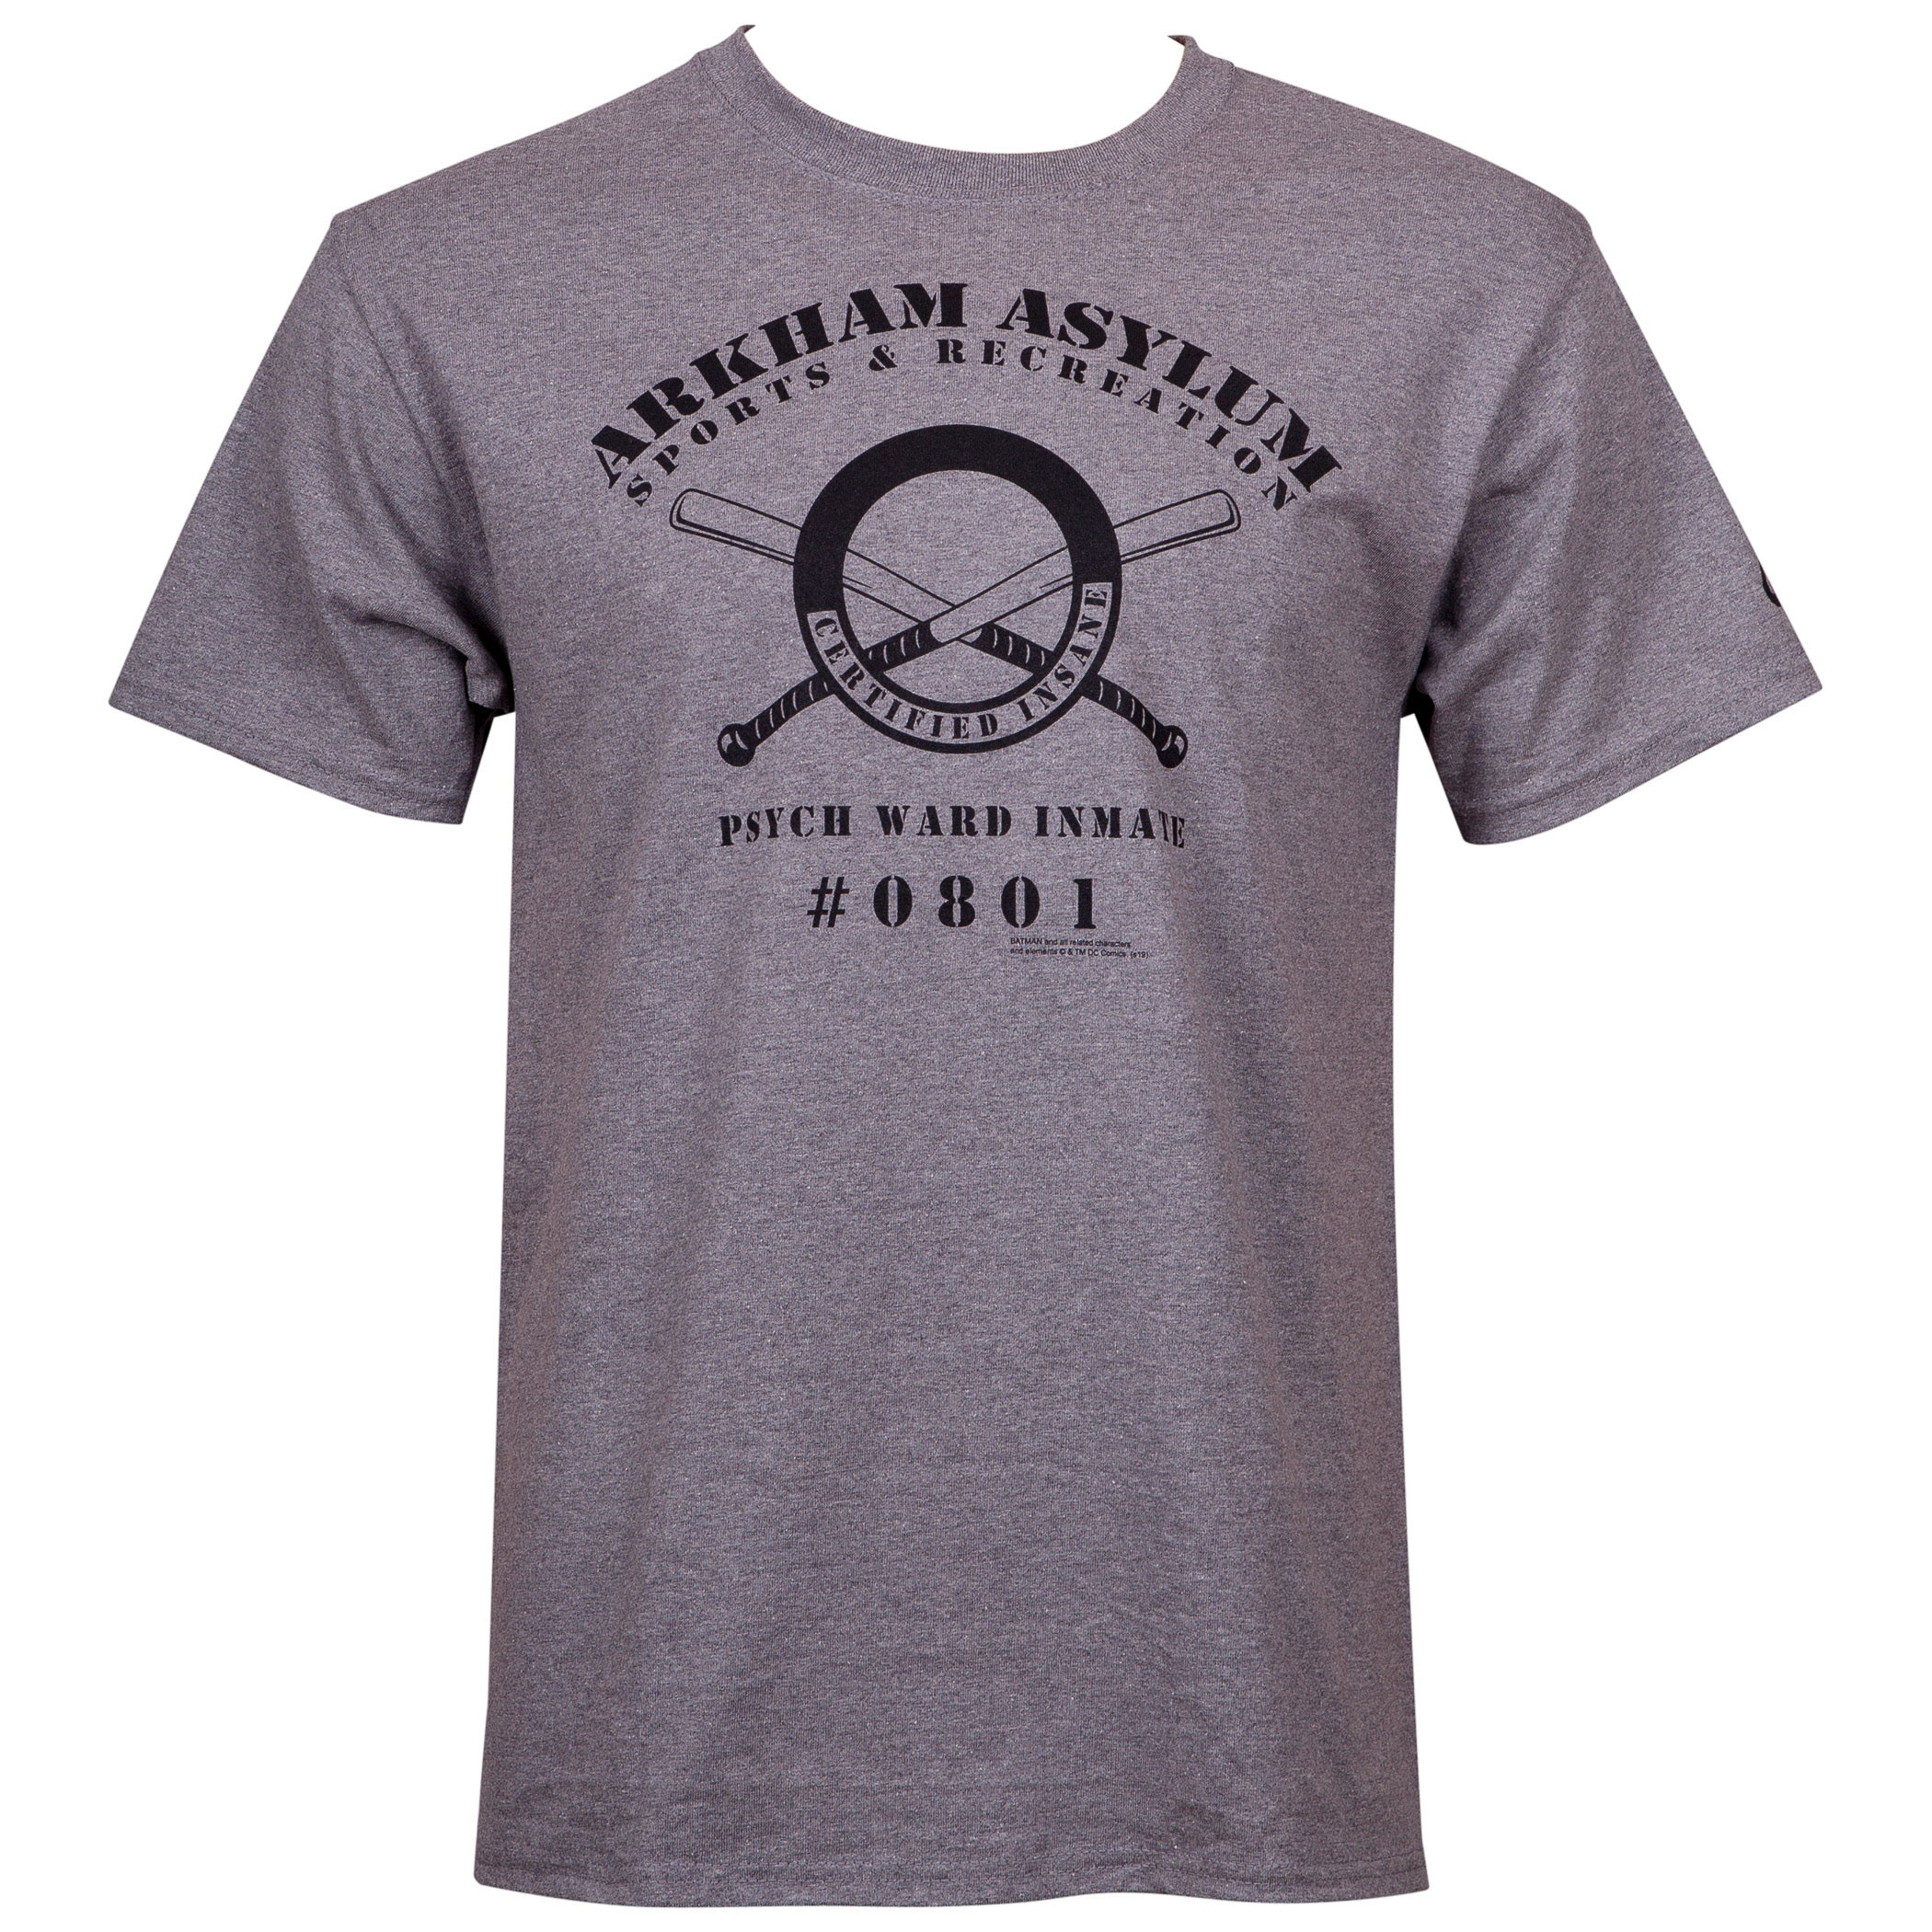 Arkham Asylum Parks and Recreation T-Shirt